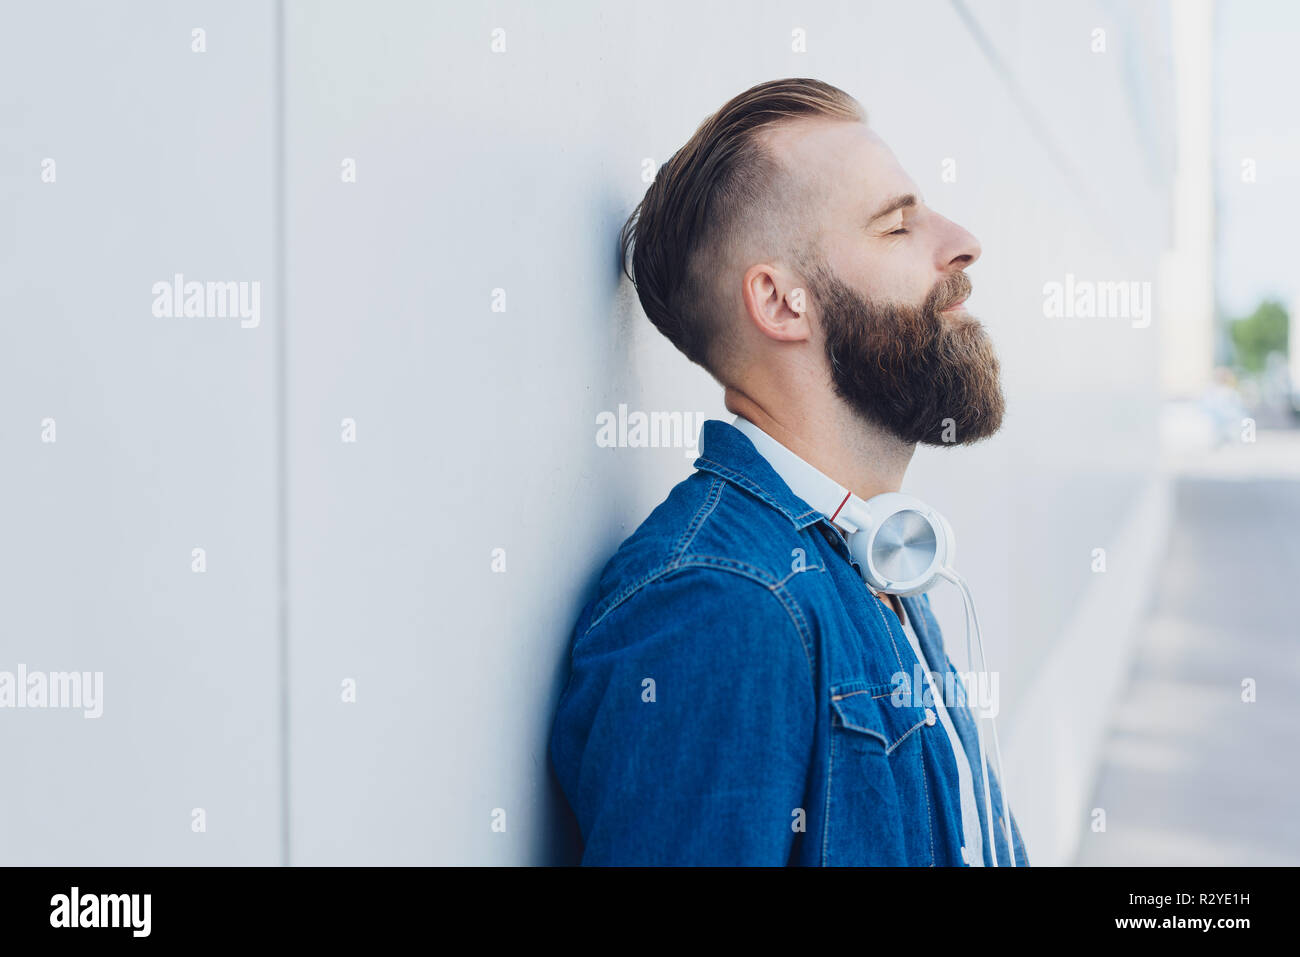 Bearded man taking a quiet moment to relax and de-stress leaning against a receding exterior white wall with eyes closed - Stock Image